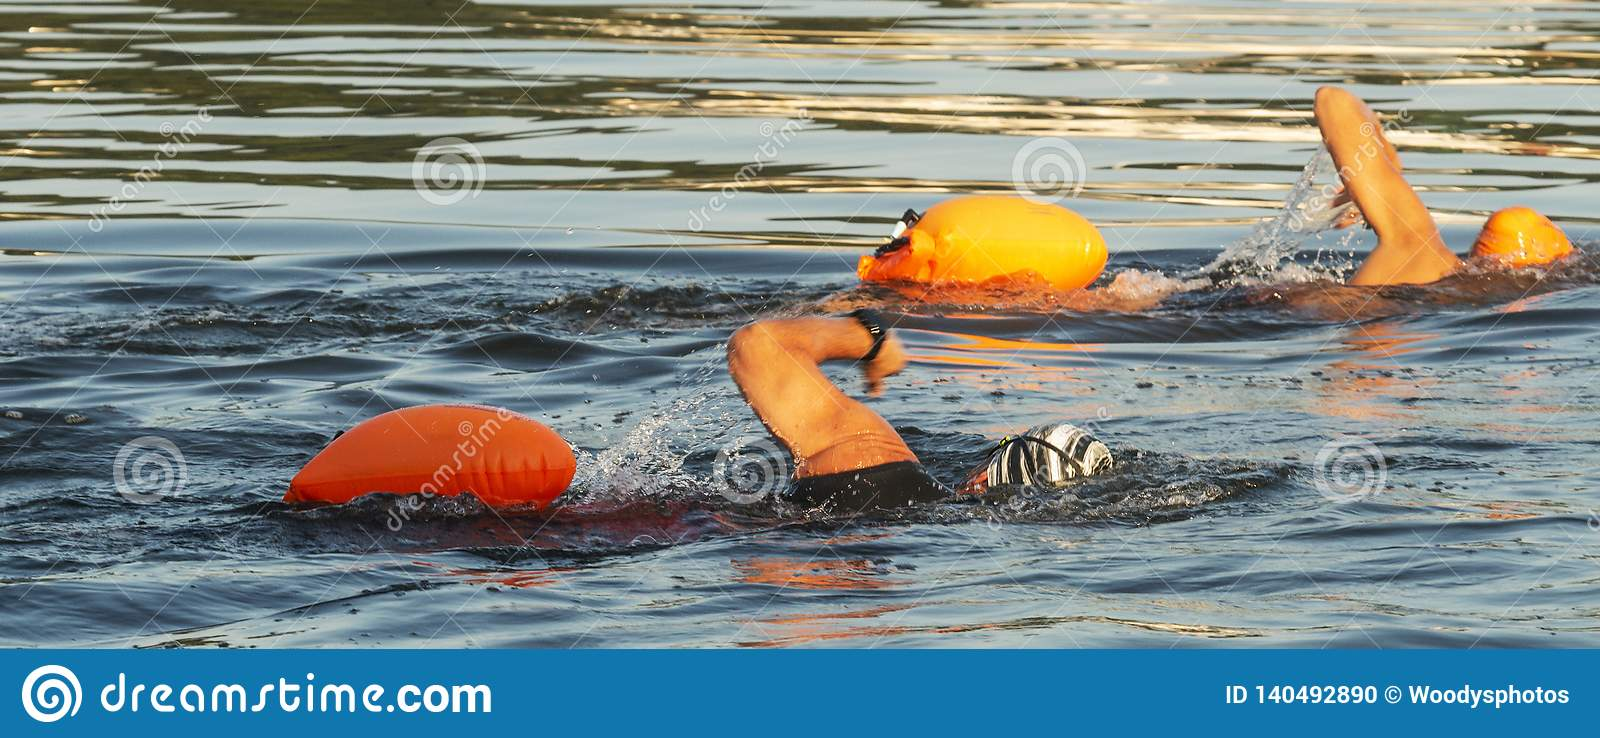 Two simmers with orange flotation divices in water